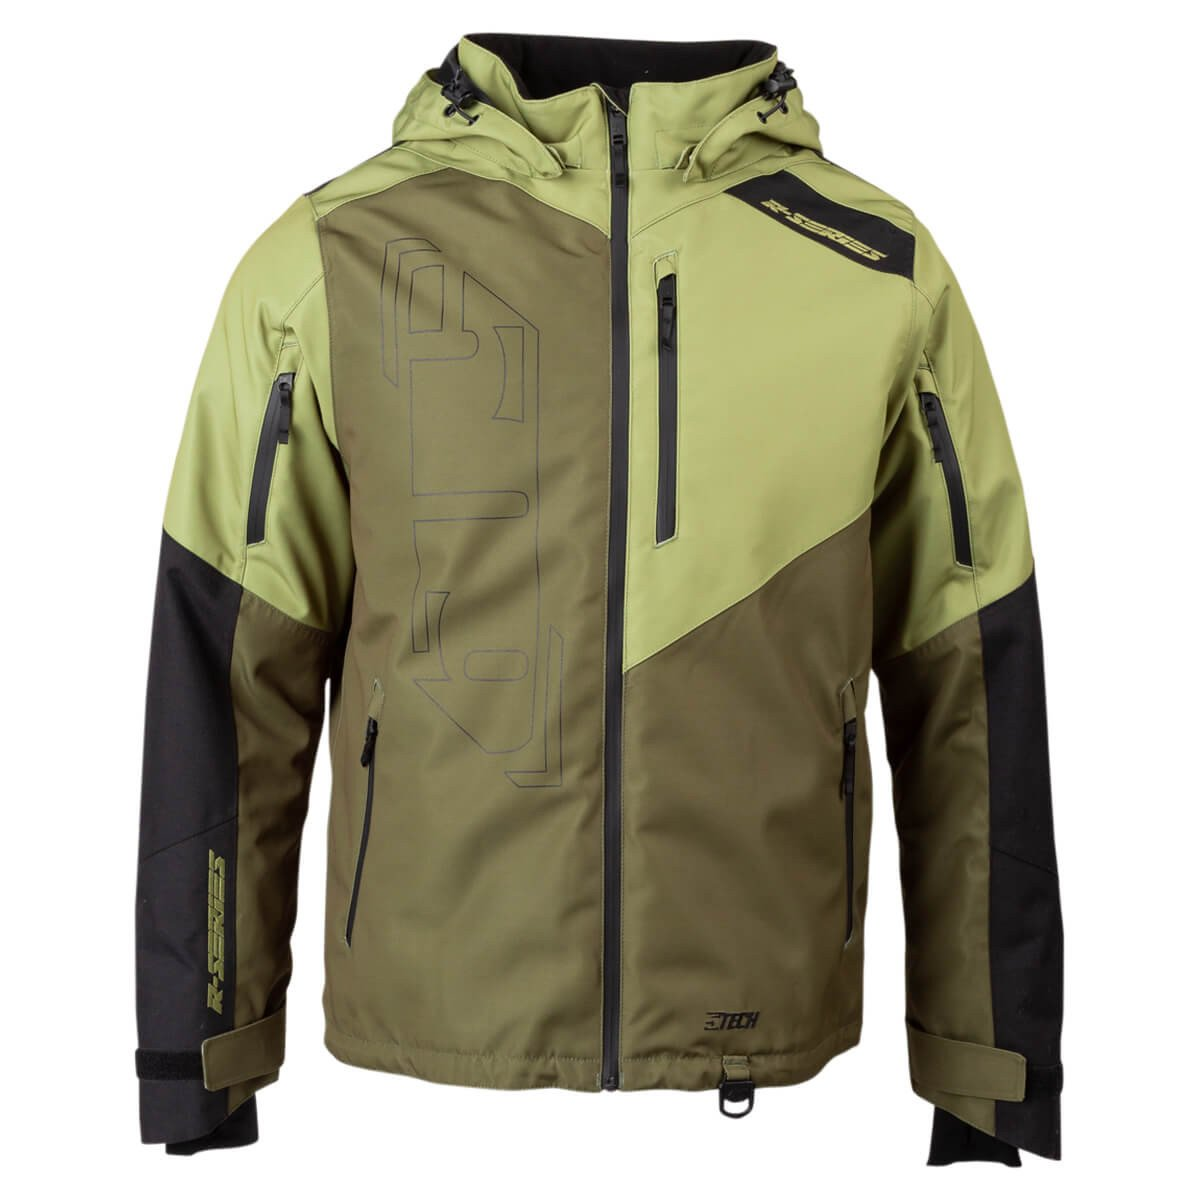 509 R-200 INSULATED CROSSOVER JACKET